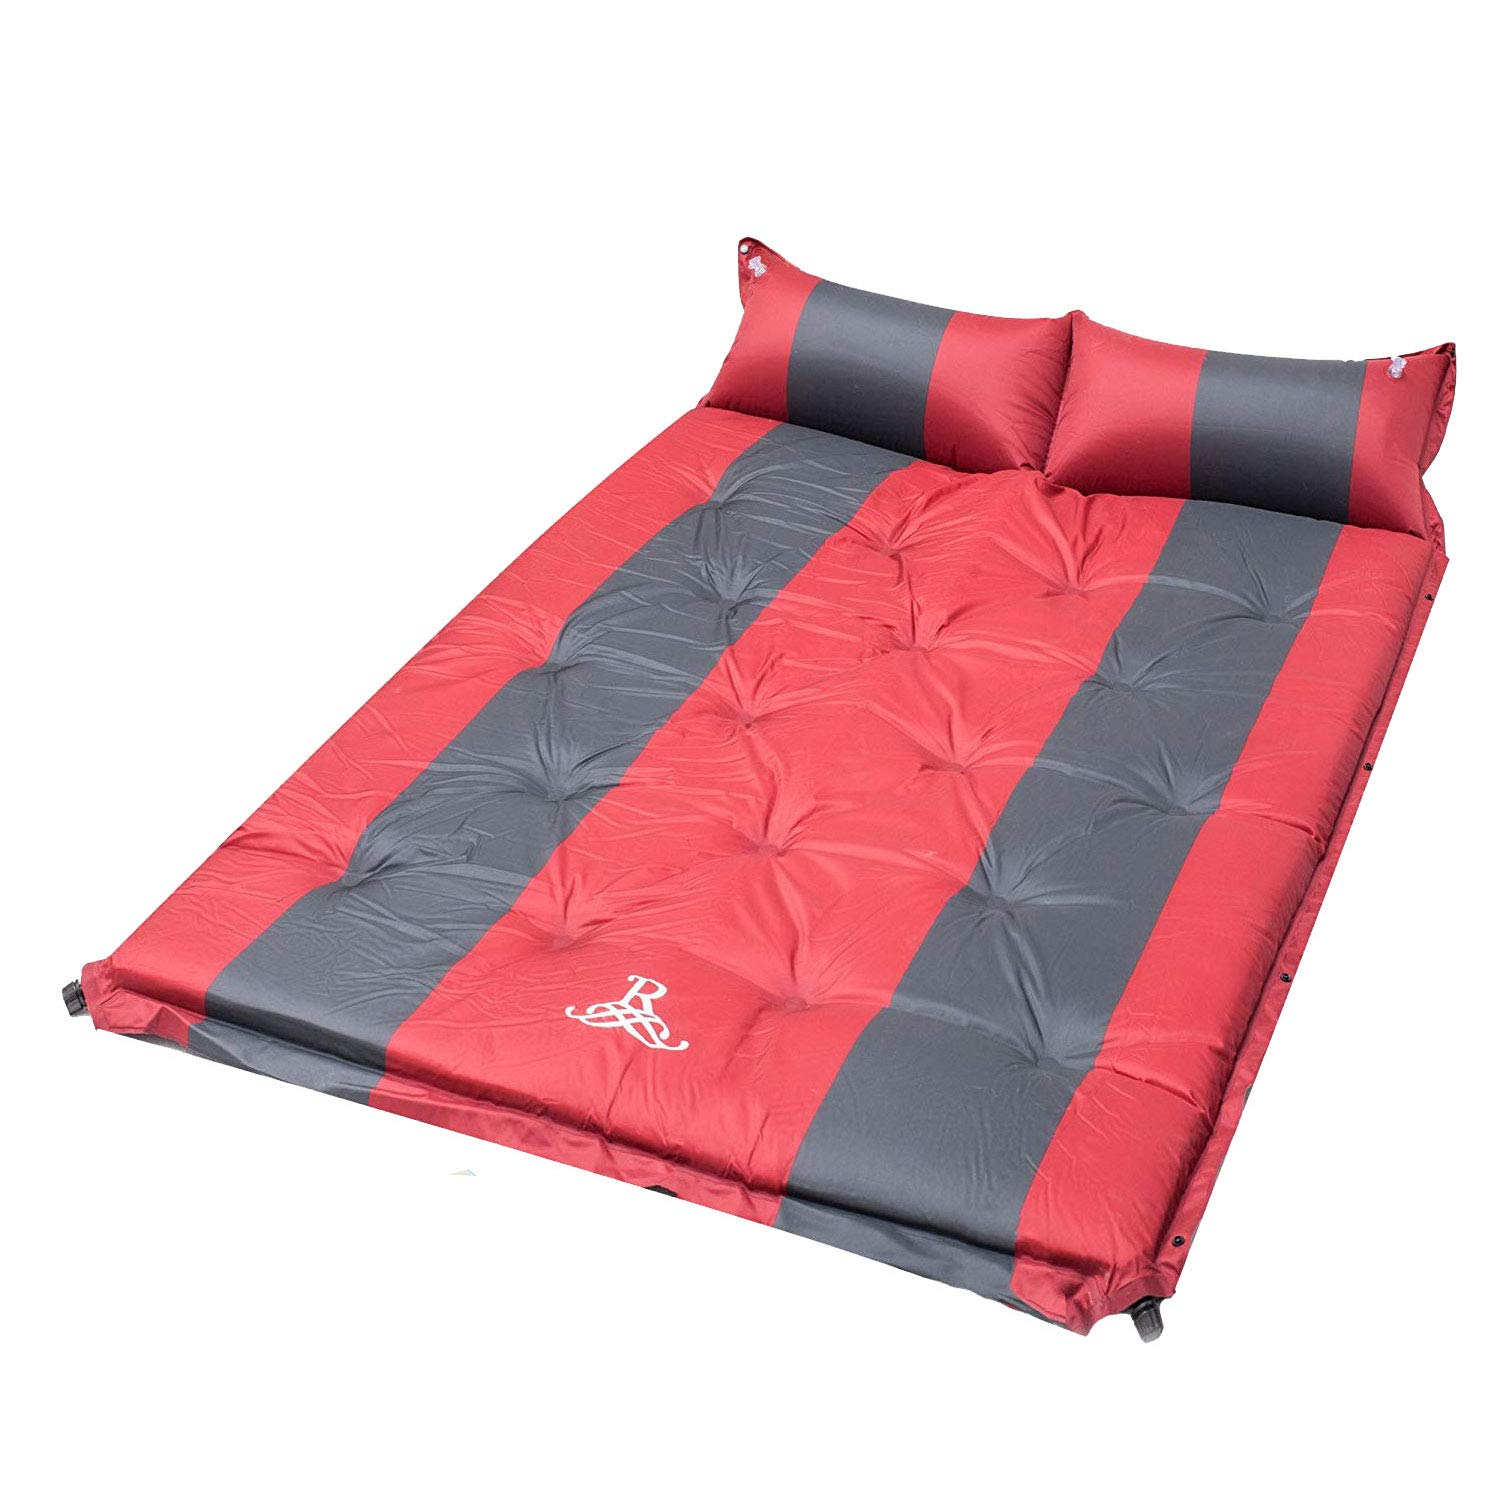 BELLAMORE GIFT Self-Inflating Sleeping Pad with Armrest & Pillow - Inflatable Foam Sleeping Mat for Hiking, Camping, and Traveling - Compact, Durable by BELLAMORE GIFT